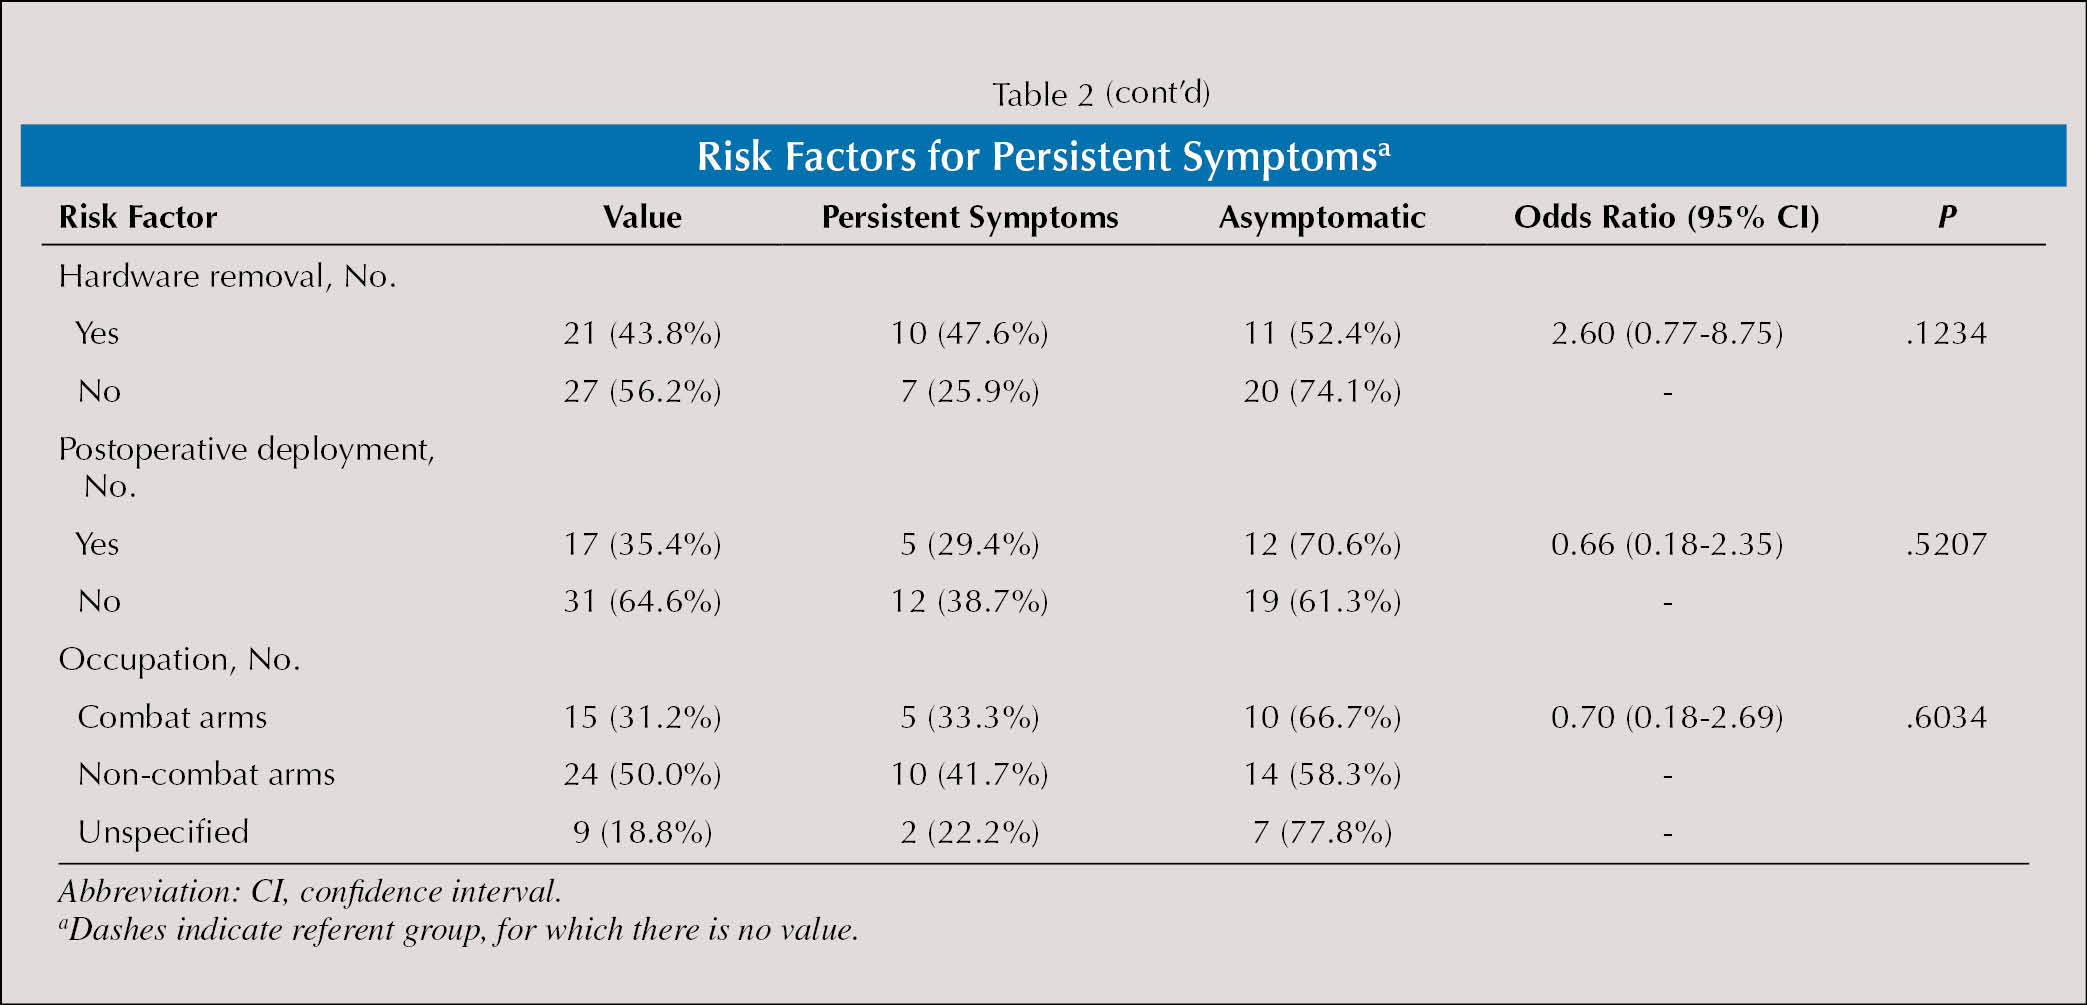 Risk Factors for Persistent Symptomsa